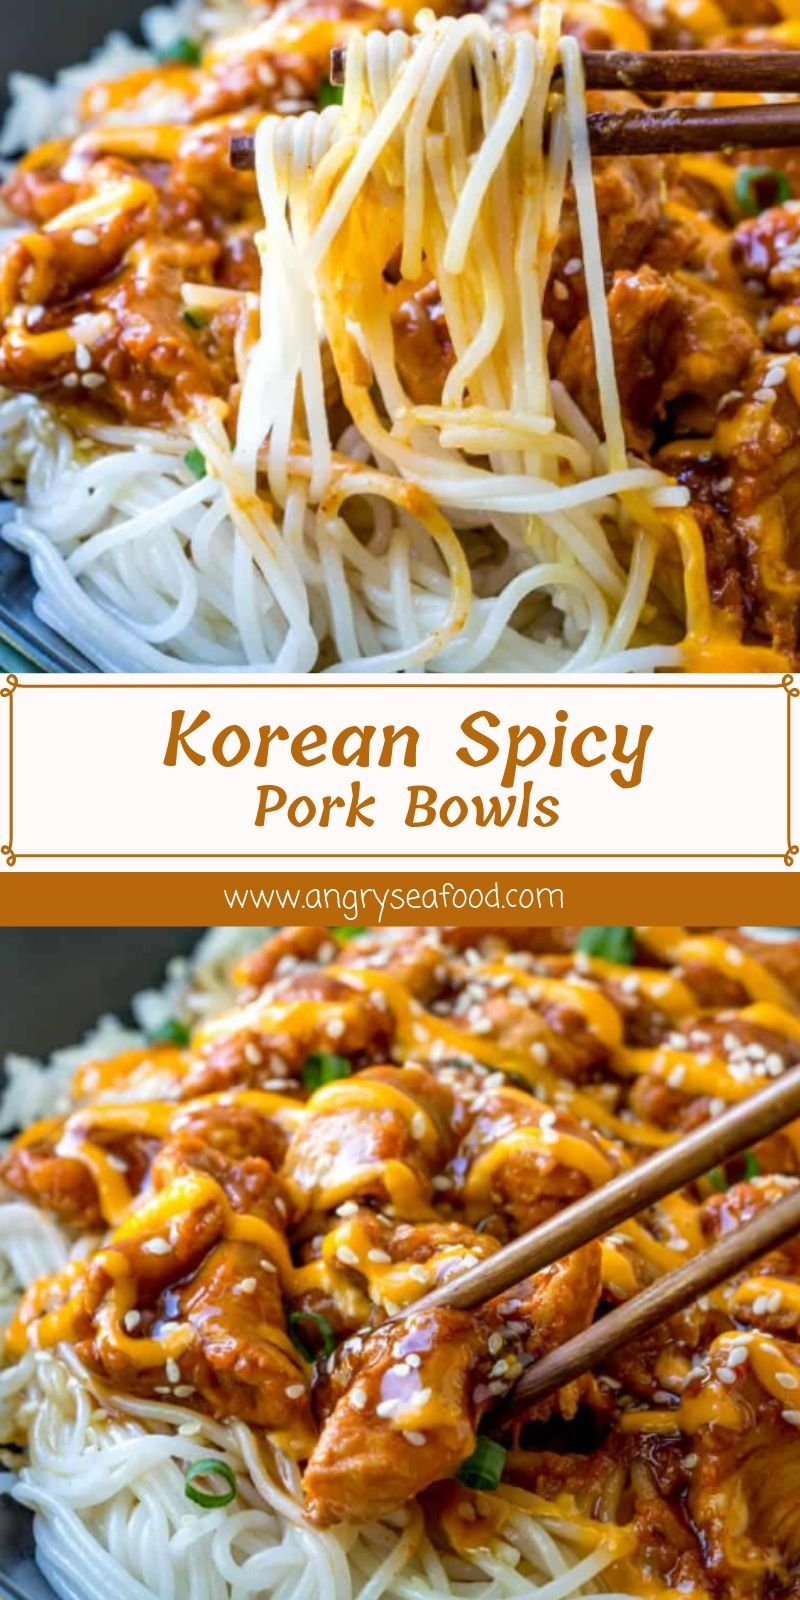 Korean Spicy Pork Bowls